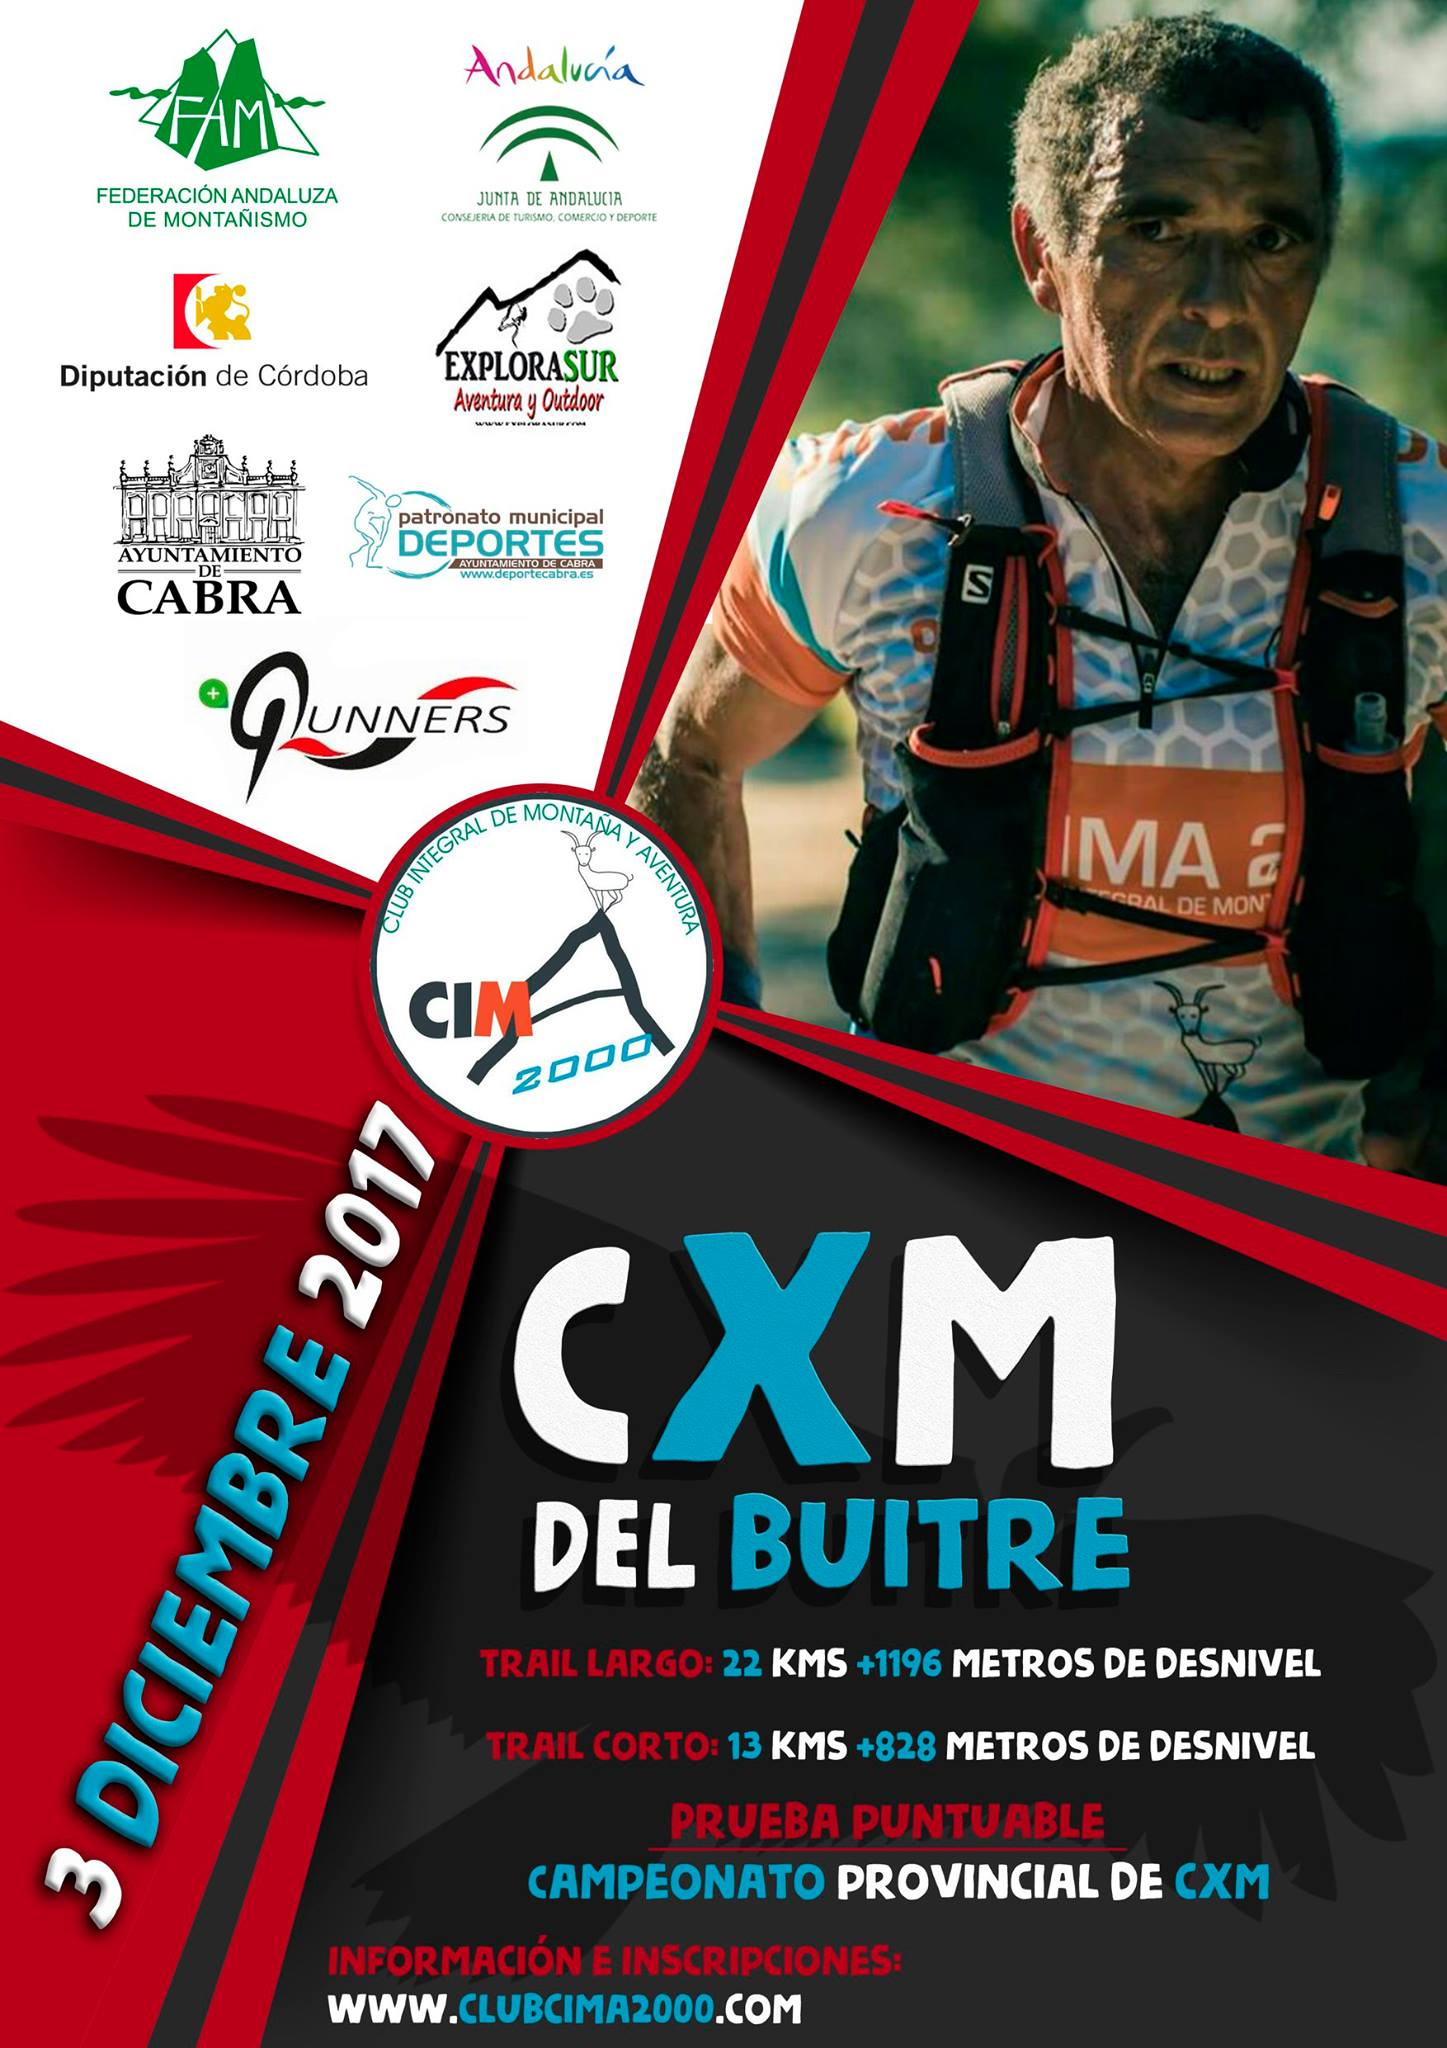 CxM del Buitre - Trail Largo - Sprint Chip